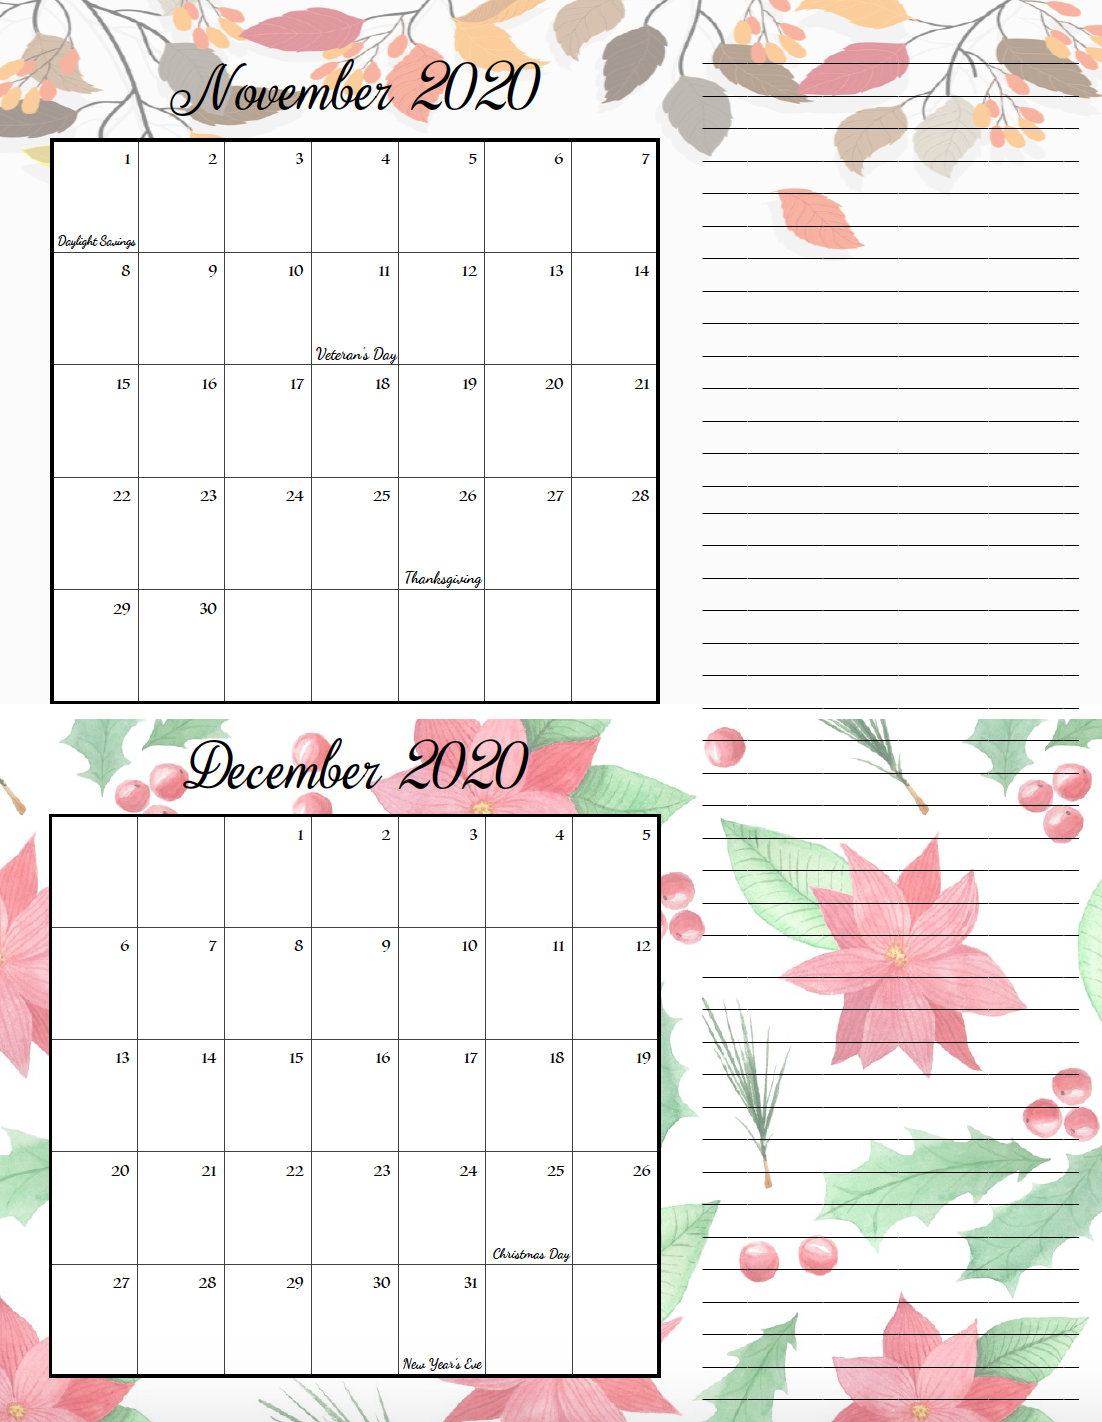 Holiday theme November/December bimonthly calendar.